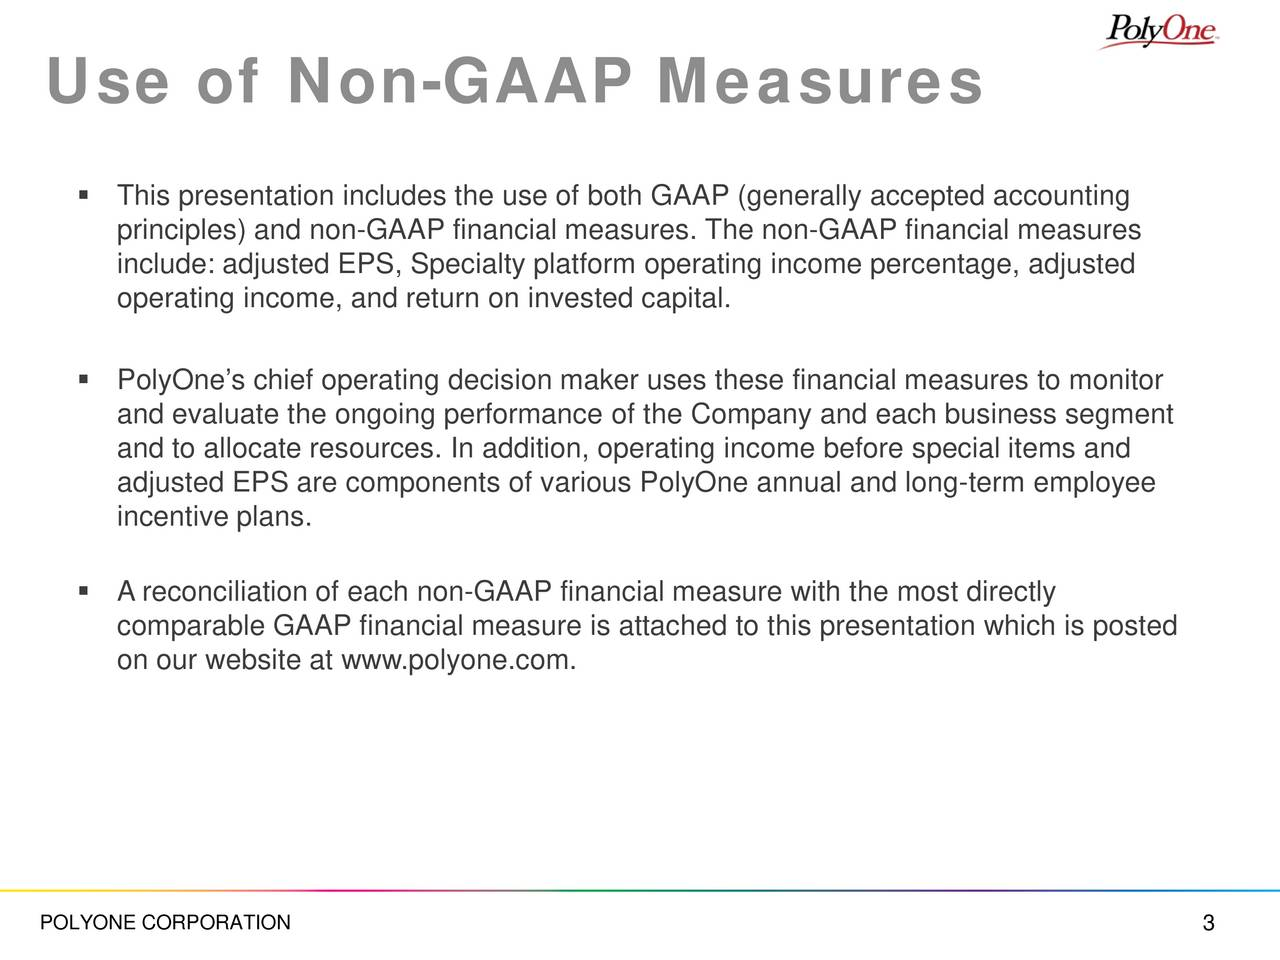 This presentation includes the use of both GAAP (generally accepted accounting principles) and non-GAAP financial measures. The non-GAAP financial measures include: adjusted EPS, Specialty platform operating income percentage, adjusted operating income, and return on invested capital. PolyOnes chief operating decision maker uses these financial measures to monitor and evaluate the ongoing performance of the Company and each business segment and to allocate resources. In addition, operating income before special items and adjusted EPS are components of various PolyOne annual and long-term employee incentive plans. A reconciliation of each non-GAAP financial measure with the most directly comparable GAAP financial measure is attached to this presentation which is posted on our website at www.polyone.com. POLYONE CORPORATION 3